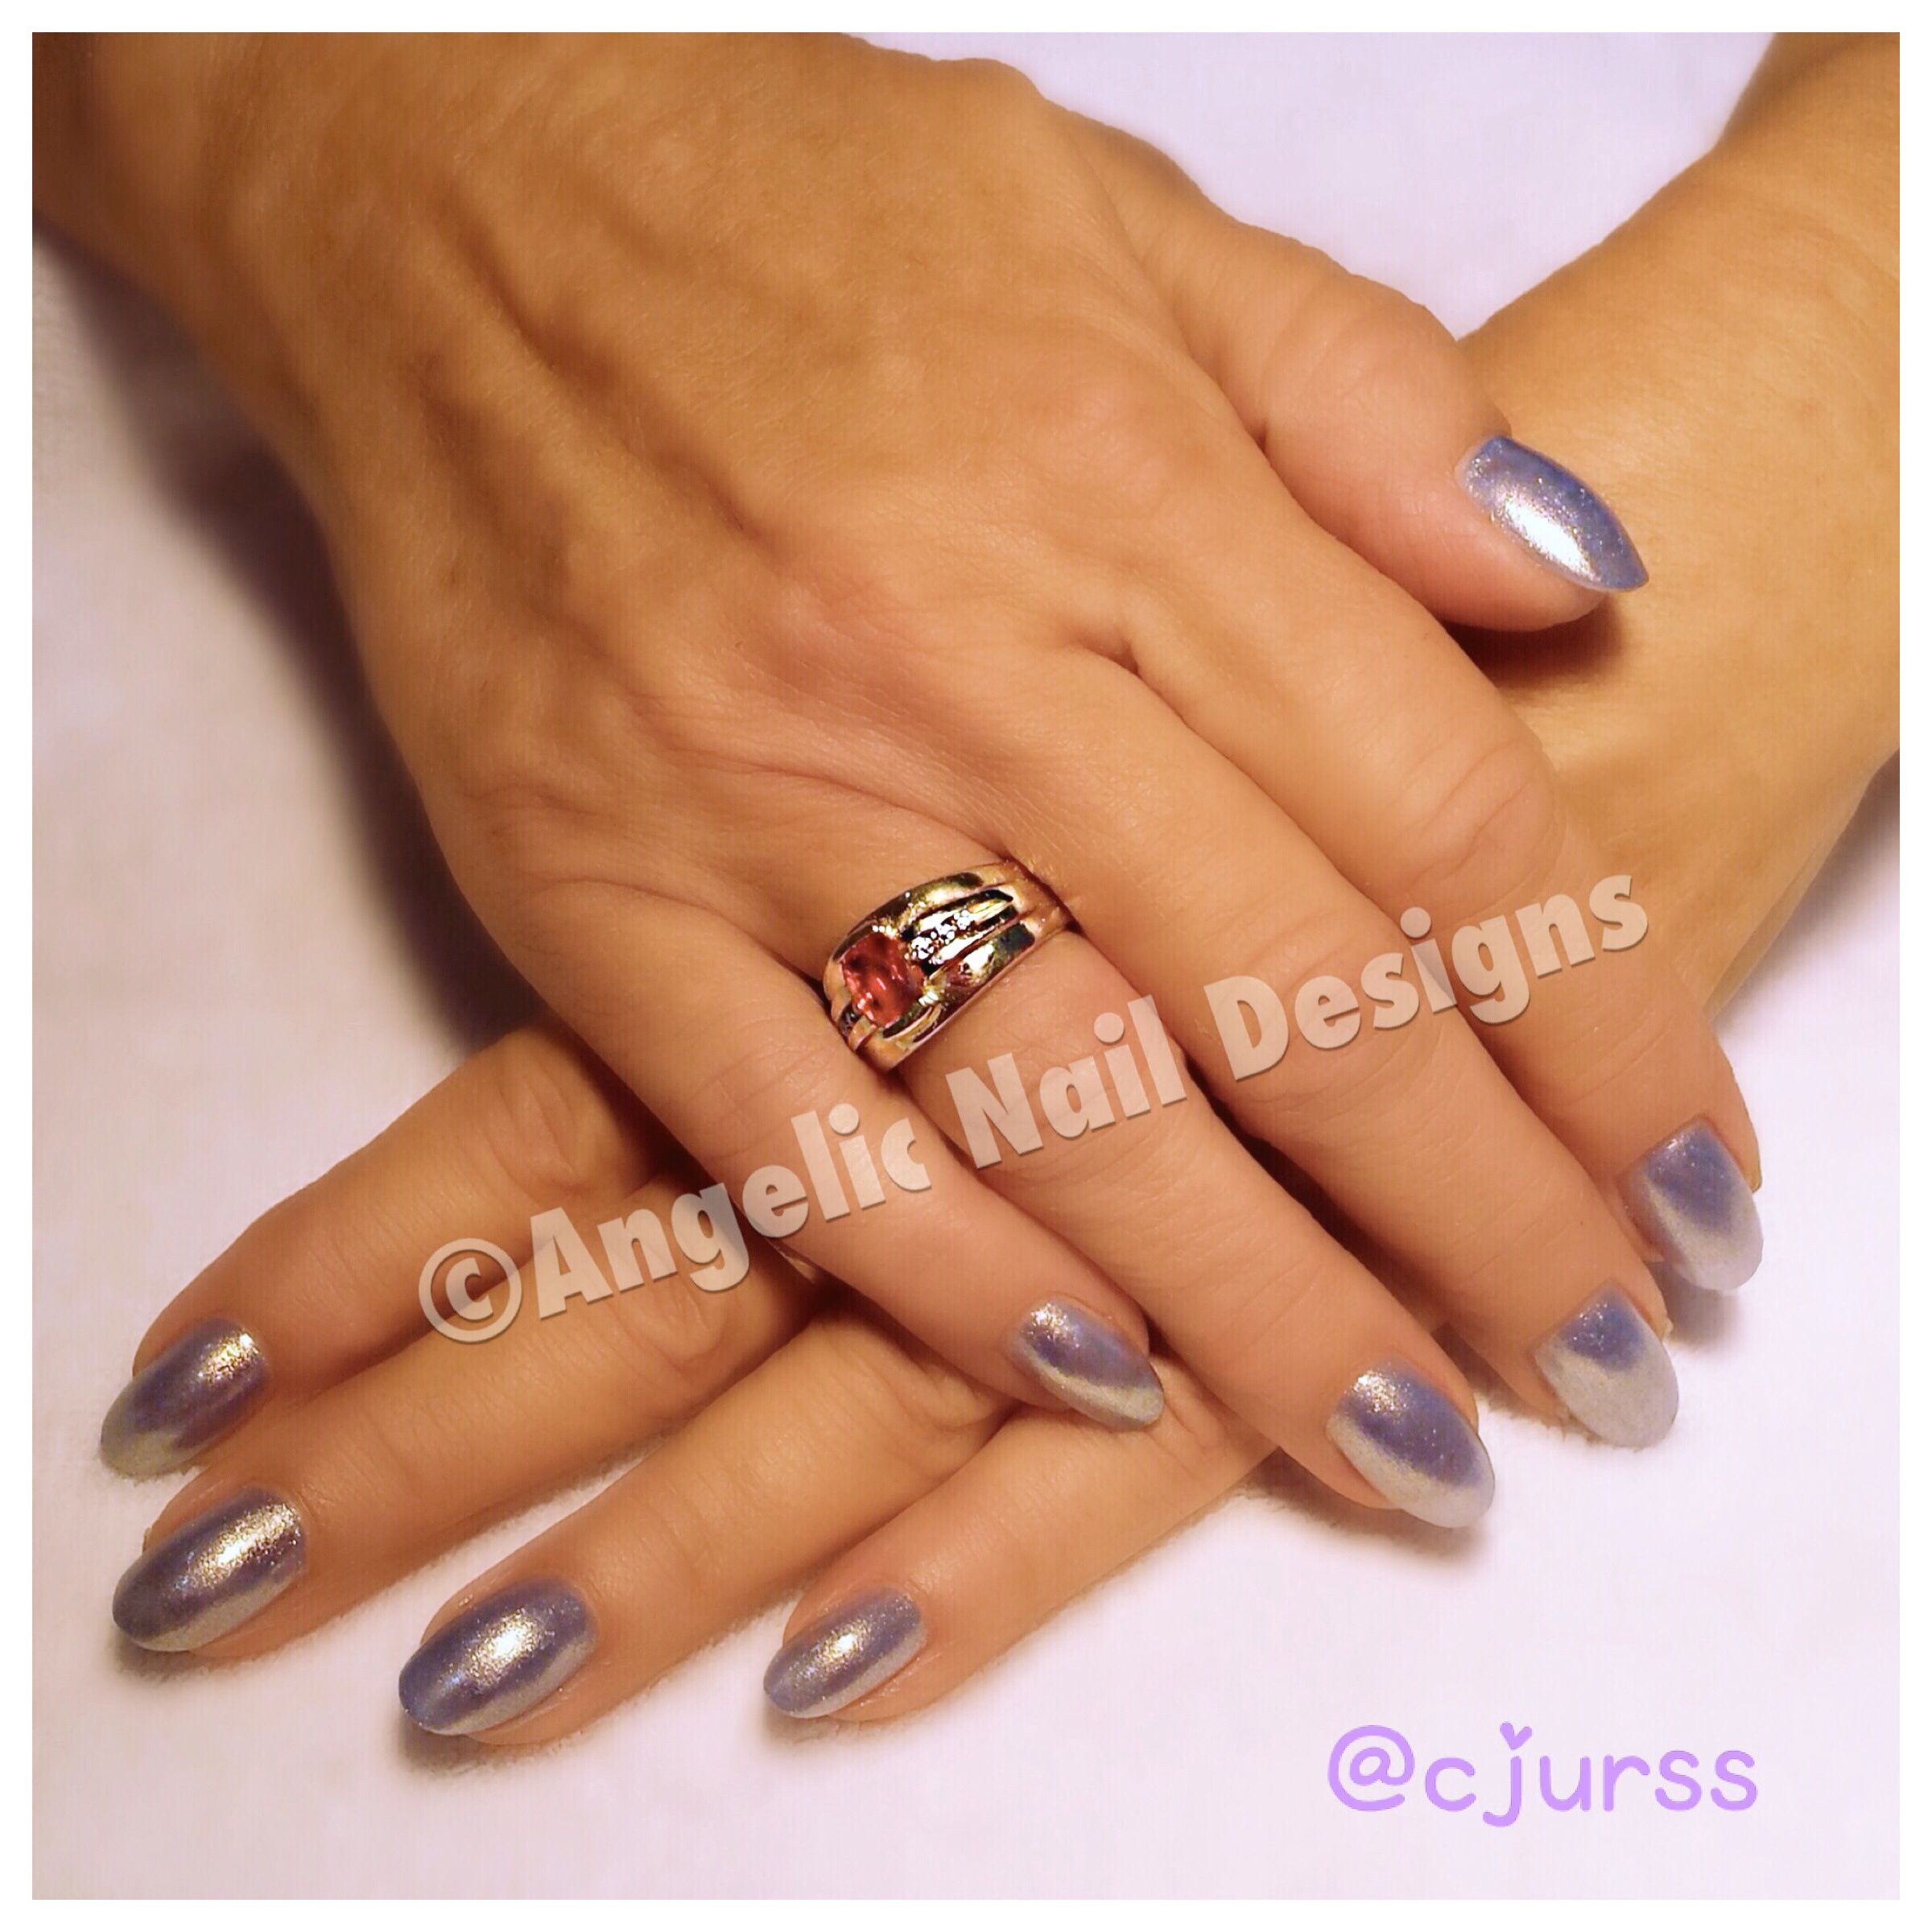 The pictured nails are Artistic Nail Design Rock Hard Liquid and ...